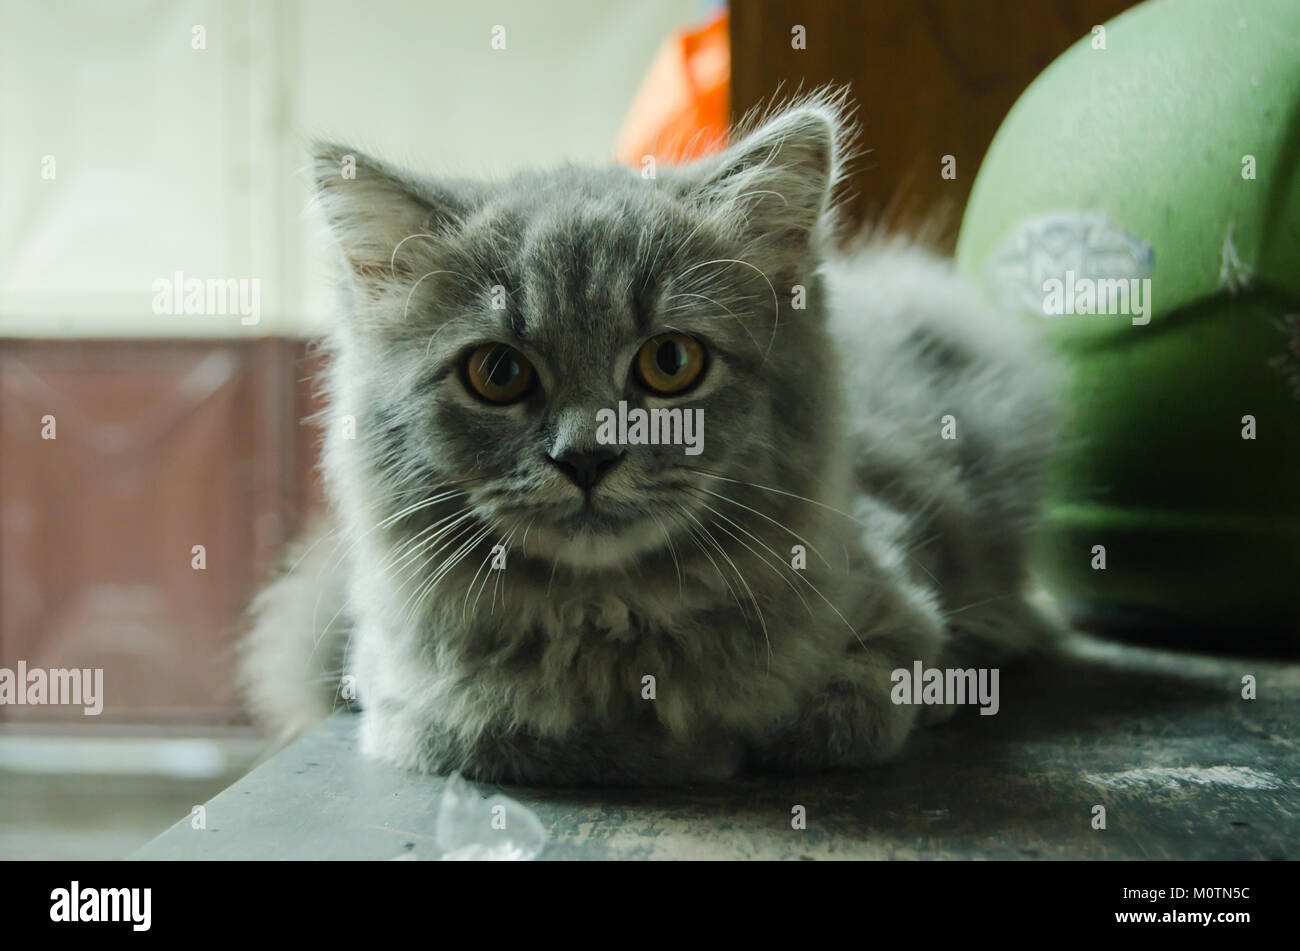 Gray cute cat that cold by rain and sitting on the table - Stock Image